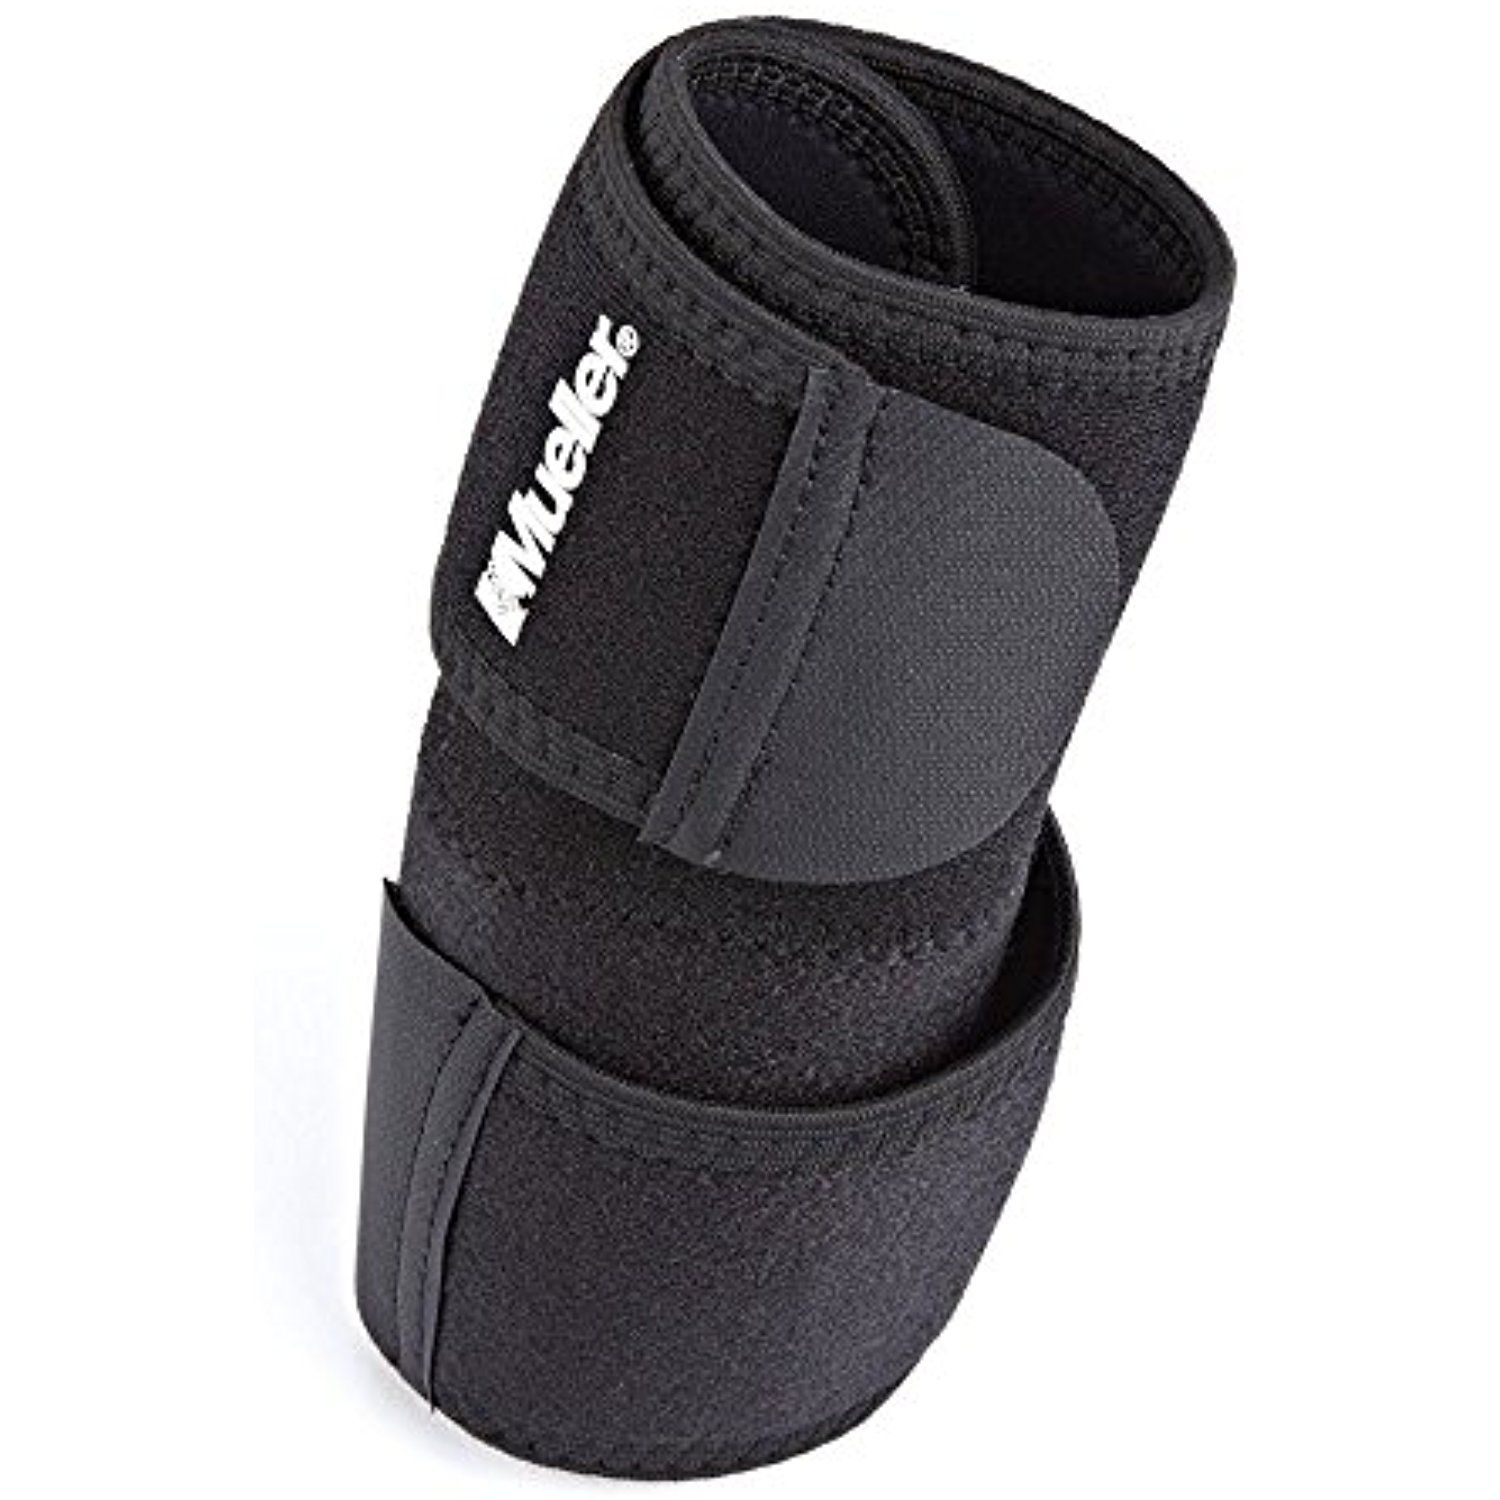 Mueller Elbow Support Neoprene, Black, One Size * Visit